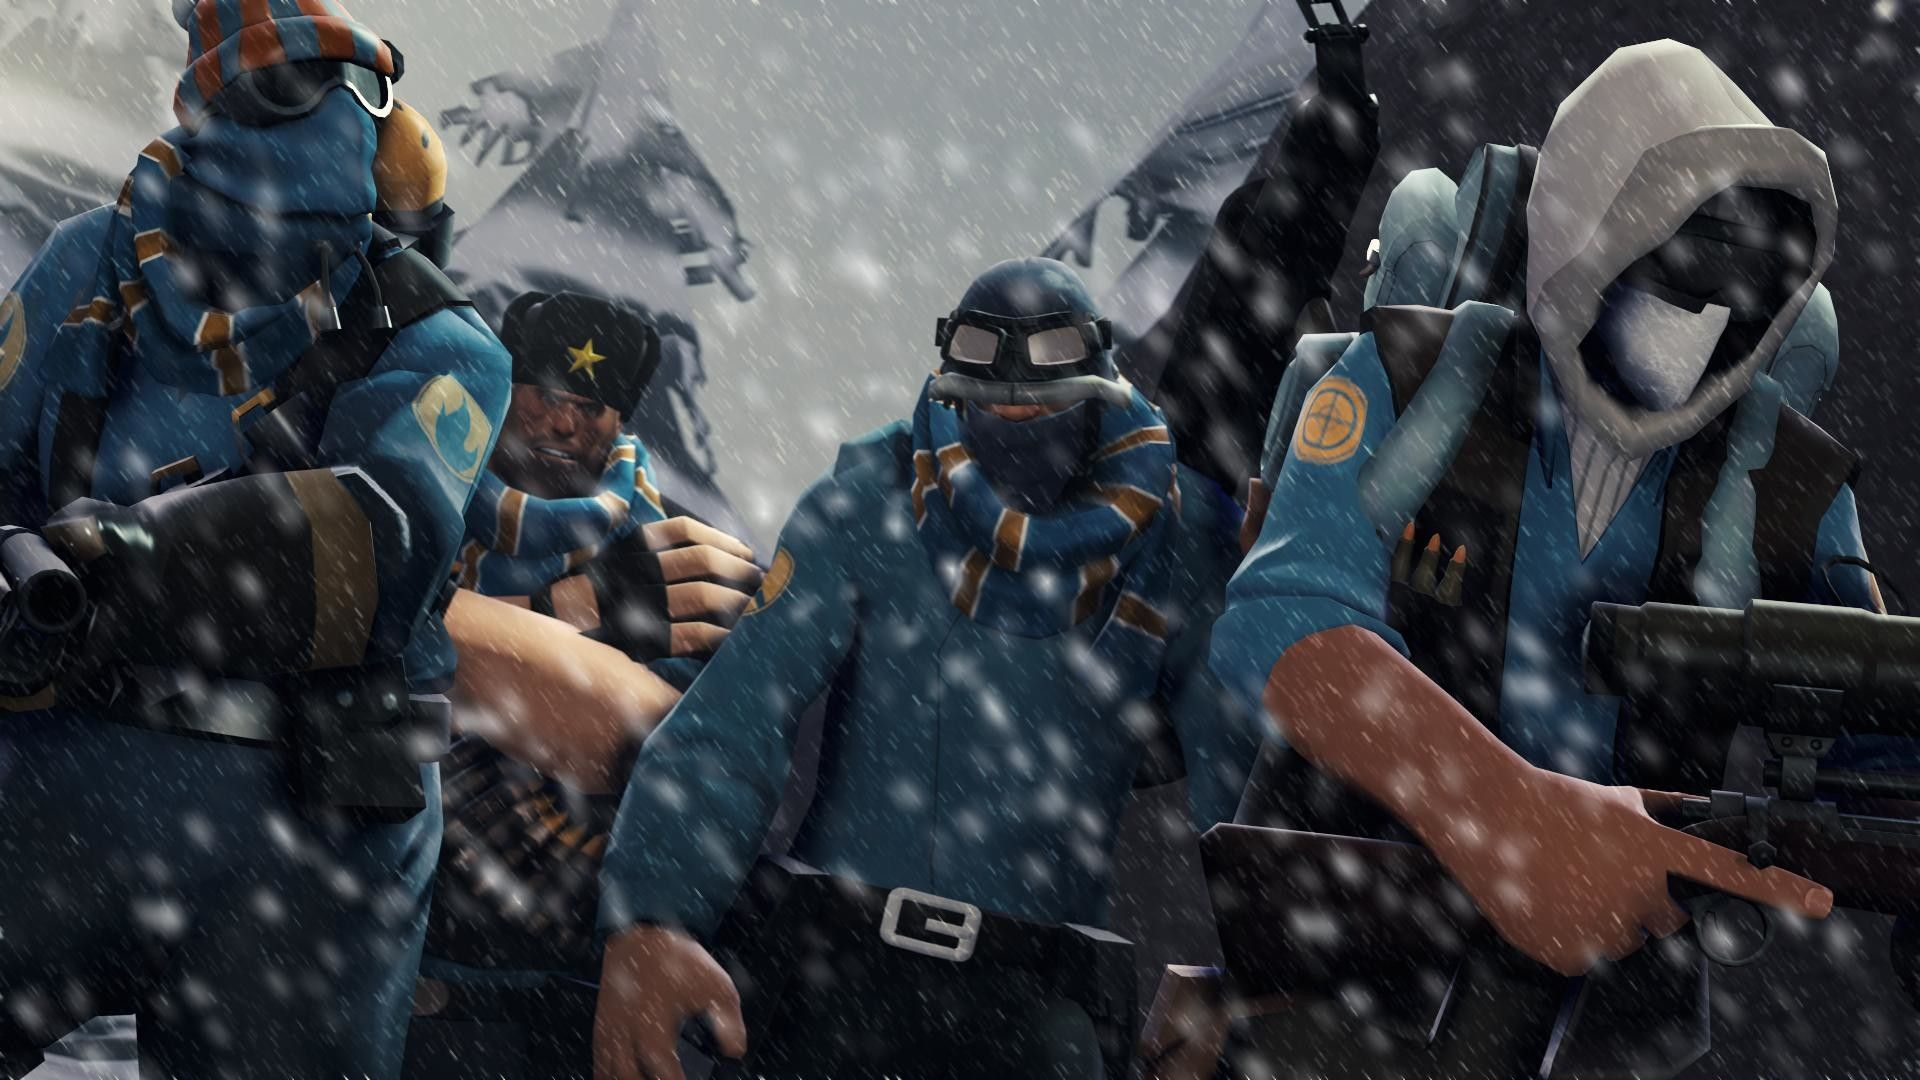 1920x1080 99 More Tf2 Wallpapers Made In Sfm Wallpaper Team Fortress 2 Image